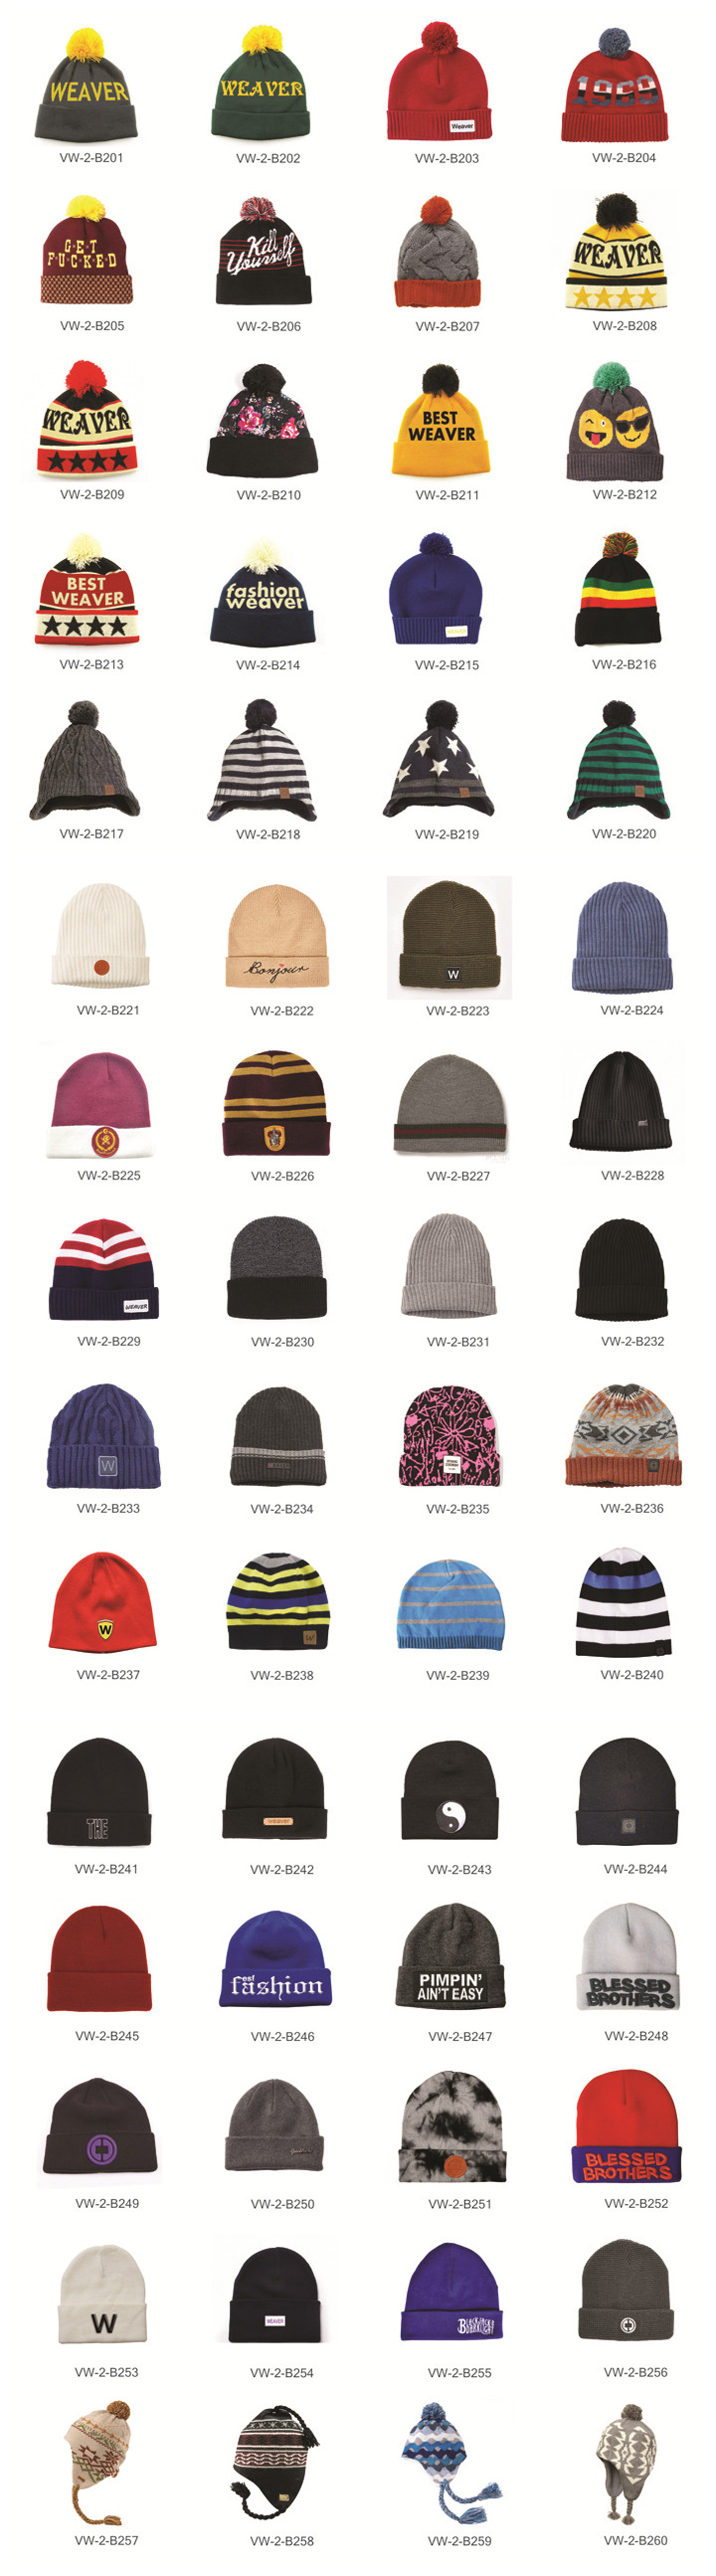 beanie knitting hats catalogue